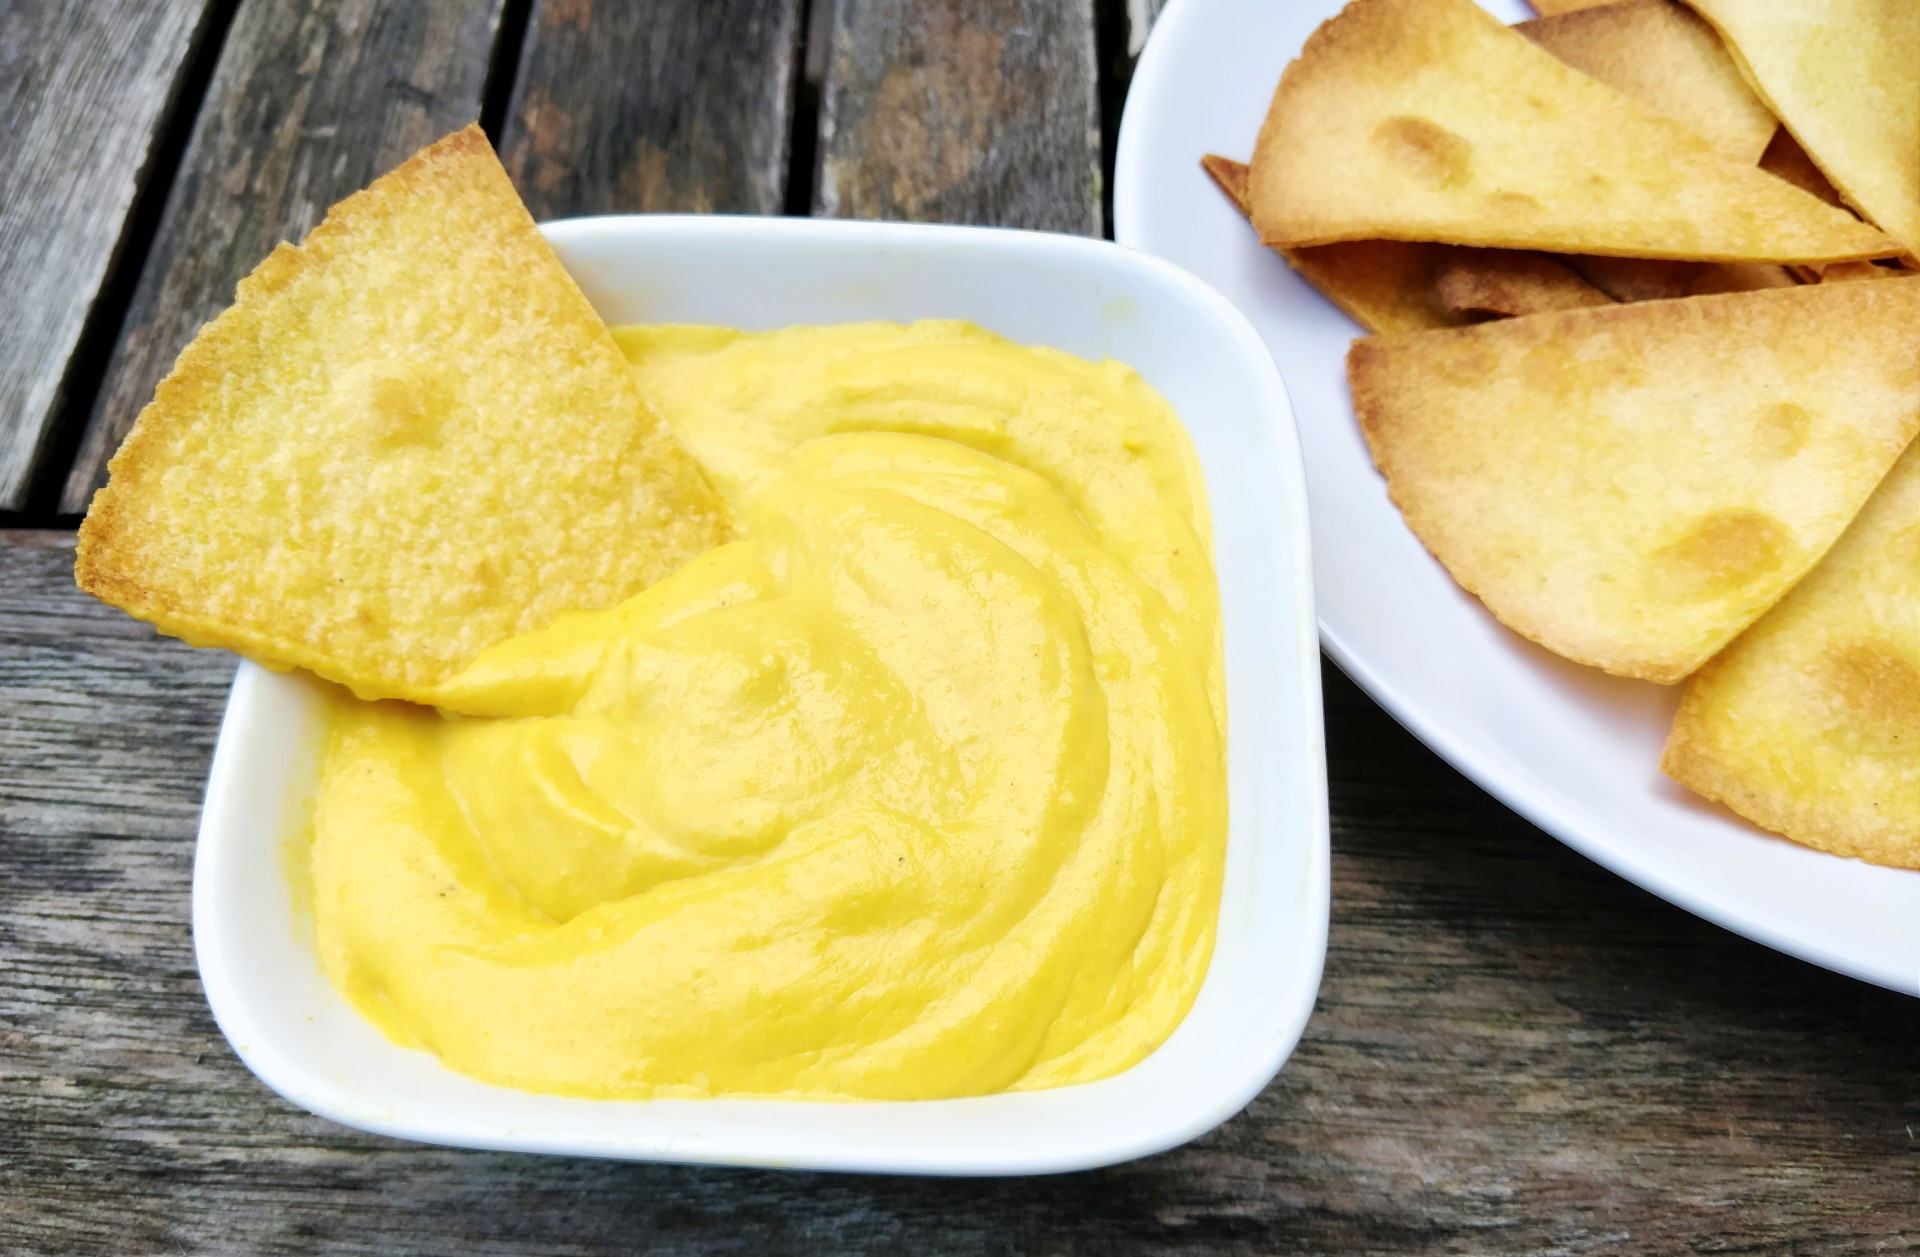 Dairy free cheese sauce for picky eaters